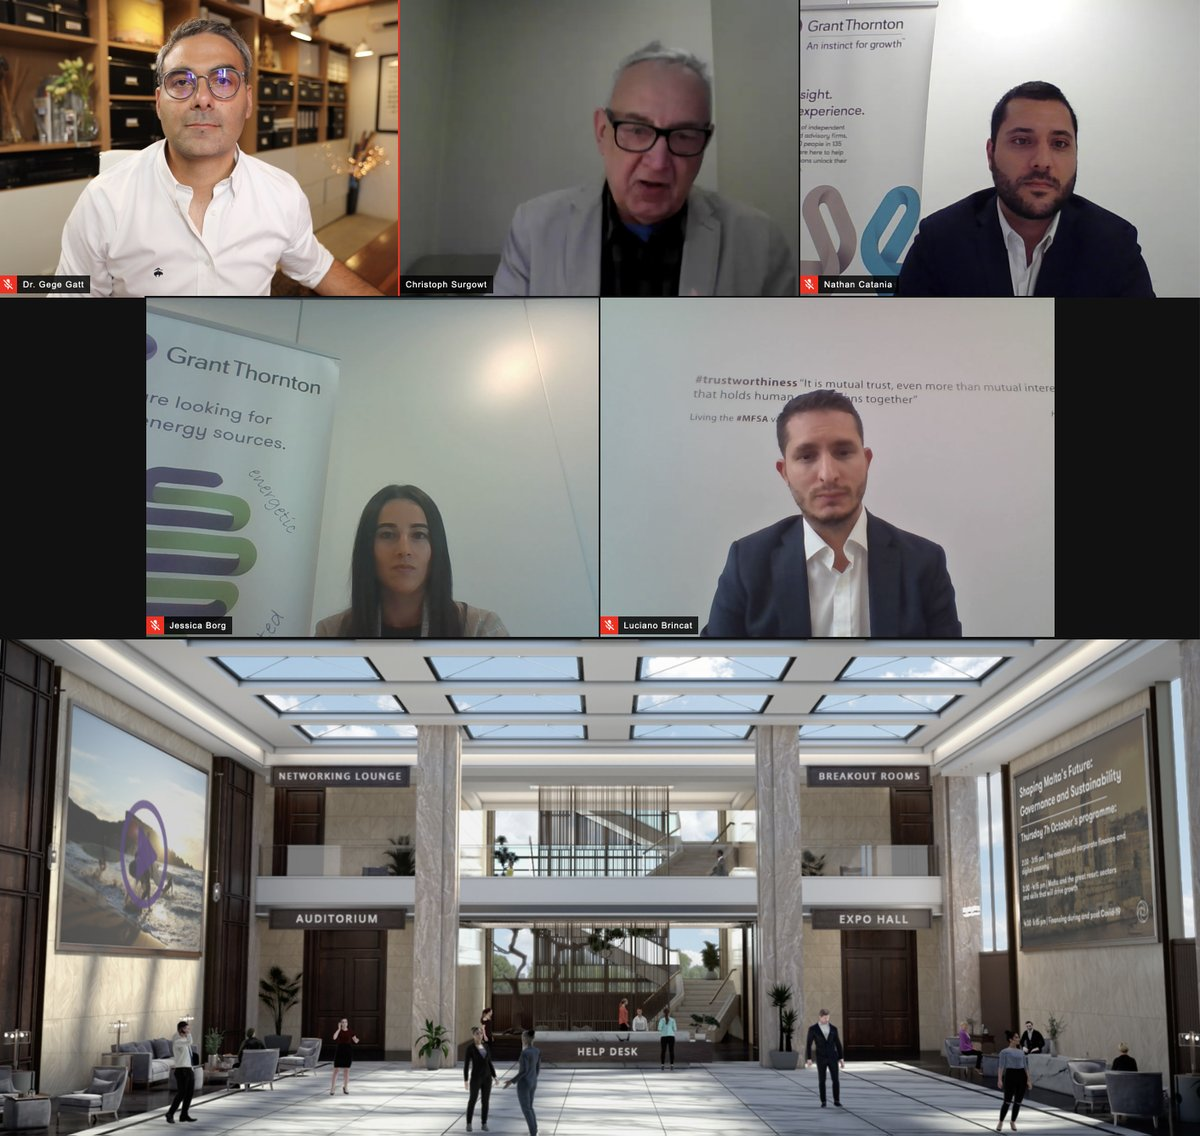 Earlier today I addressed @GrantThorntonMT's 'Shaping Malta's Future' virtual conference. It was great to have many avatars in the auditorium & real-humans on the panel 🙂 I covered the work that @EBO_ai is doing in the #fintech space & how AI augments human capability.